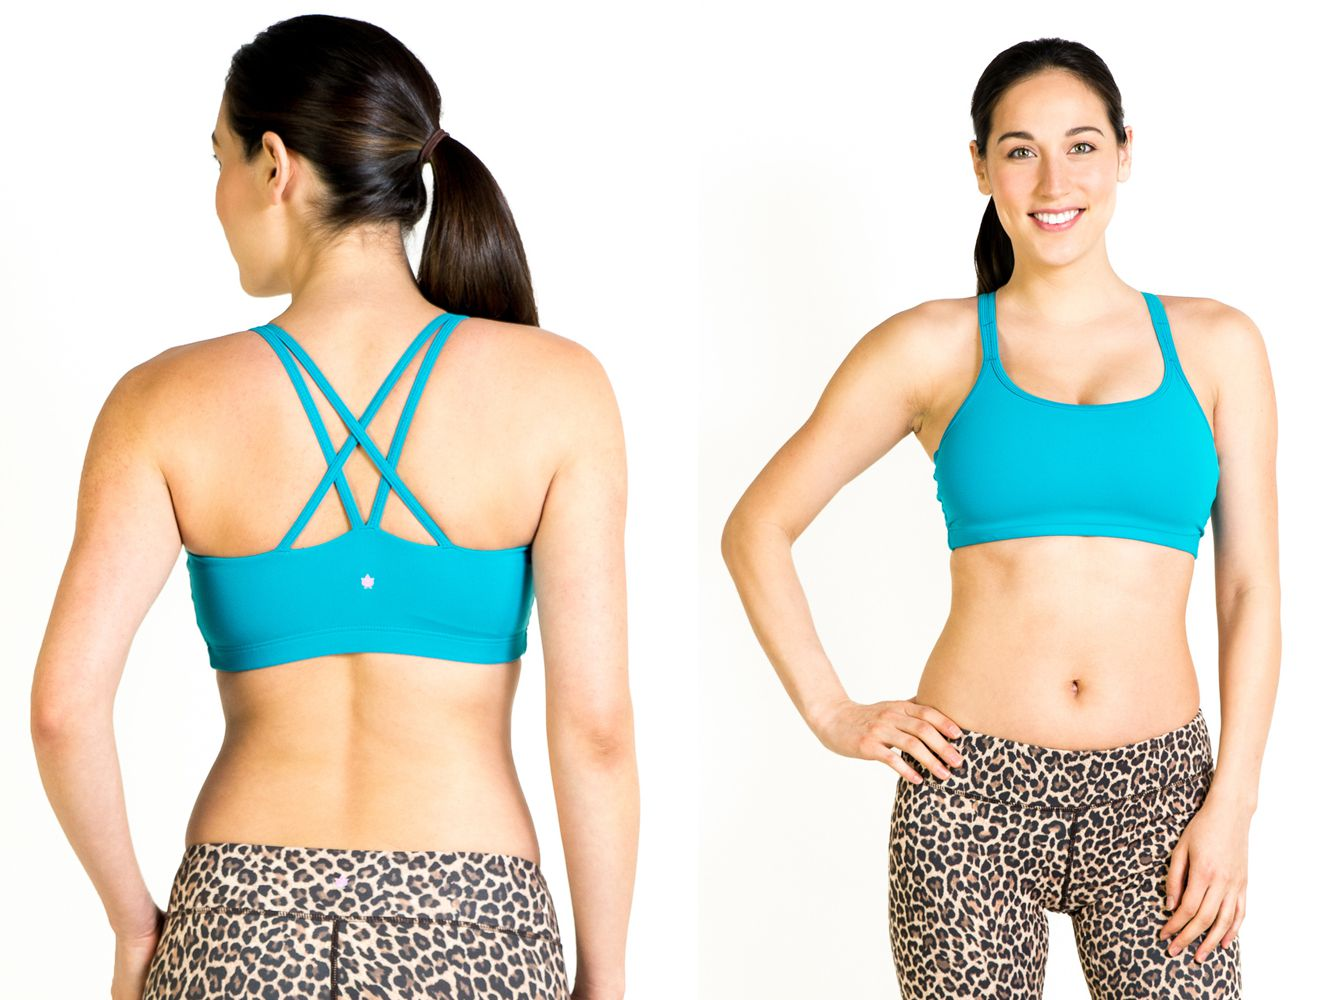 d093c5e9280 The 6 Best Sports Bras for Yoga